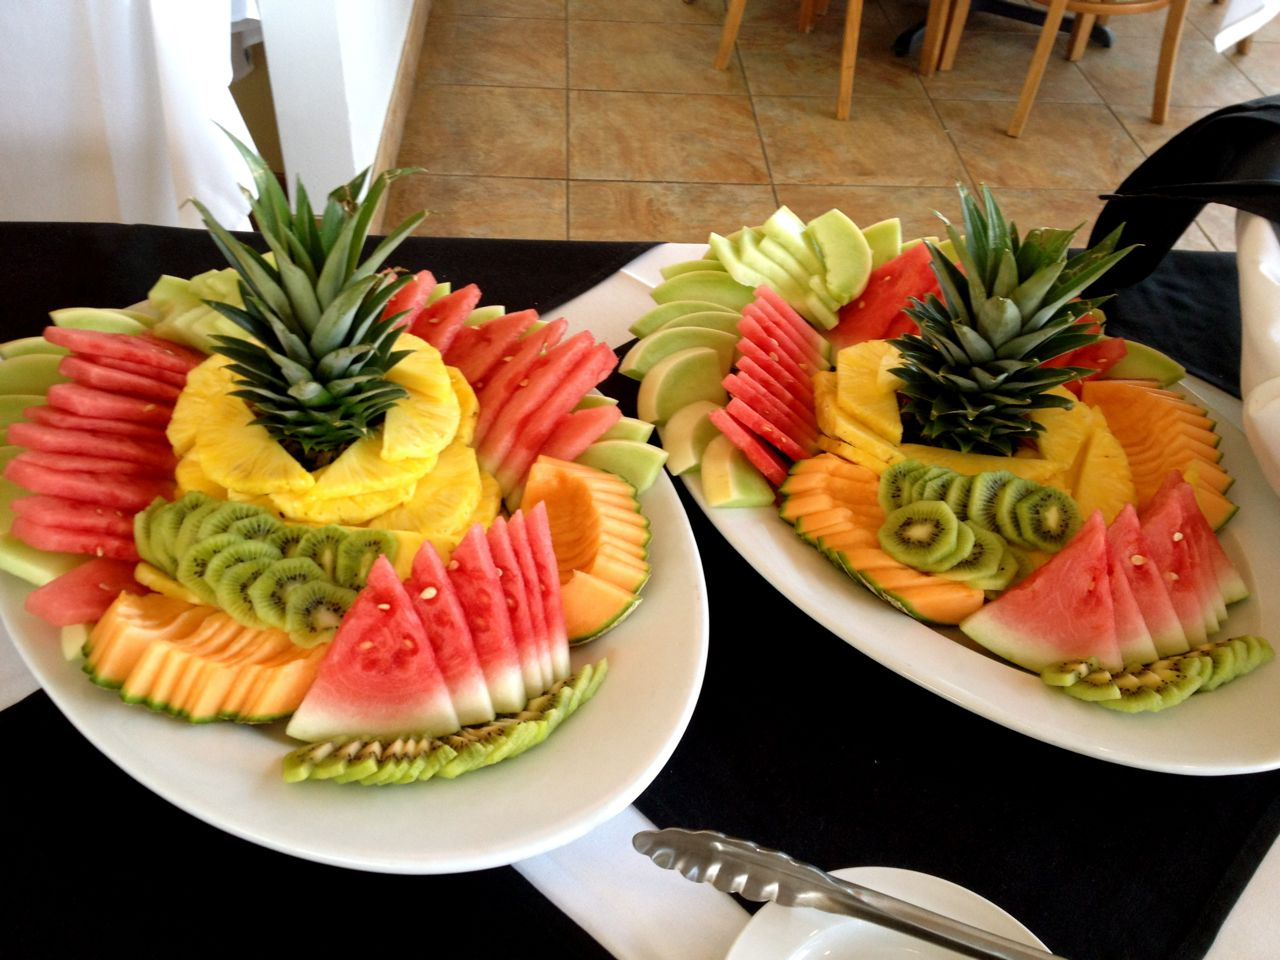 How To Set Up A Fruit Table - Table Designs